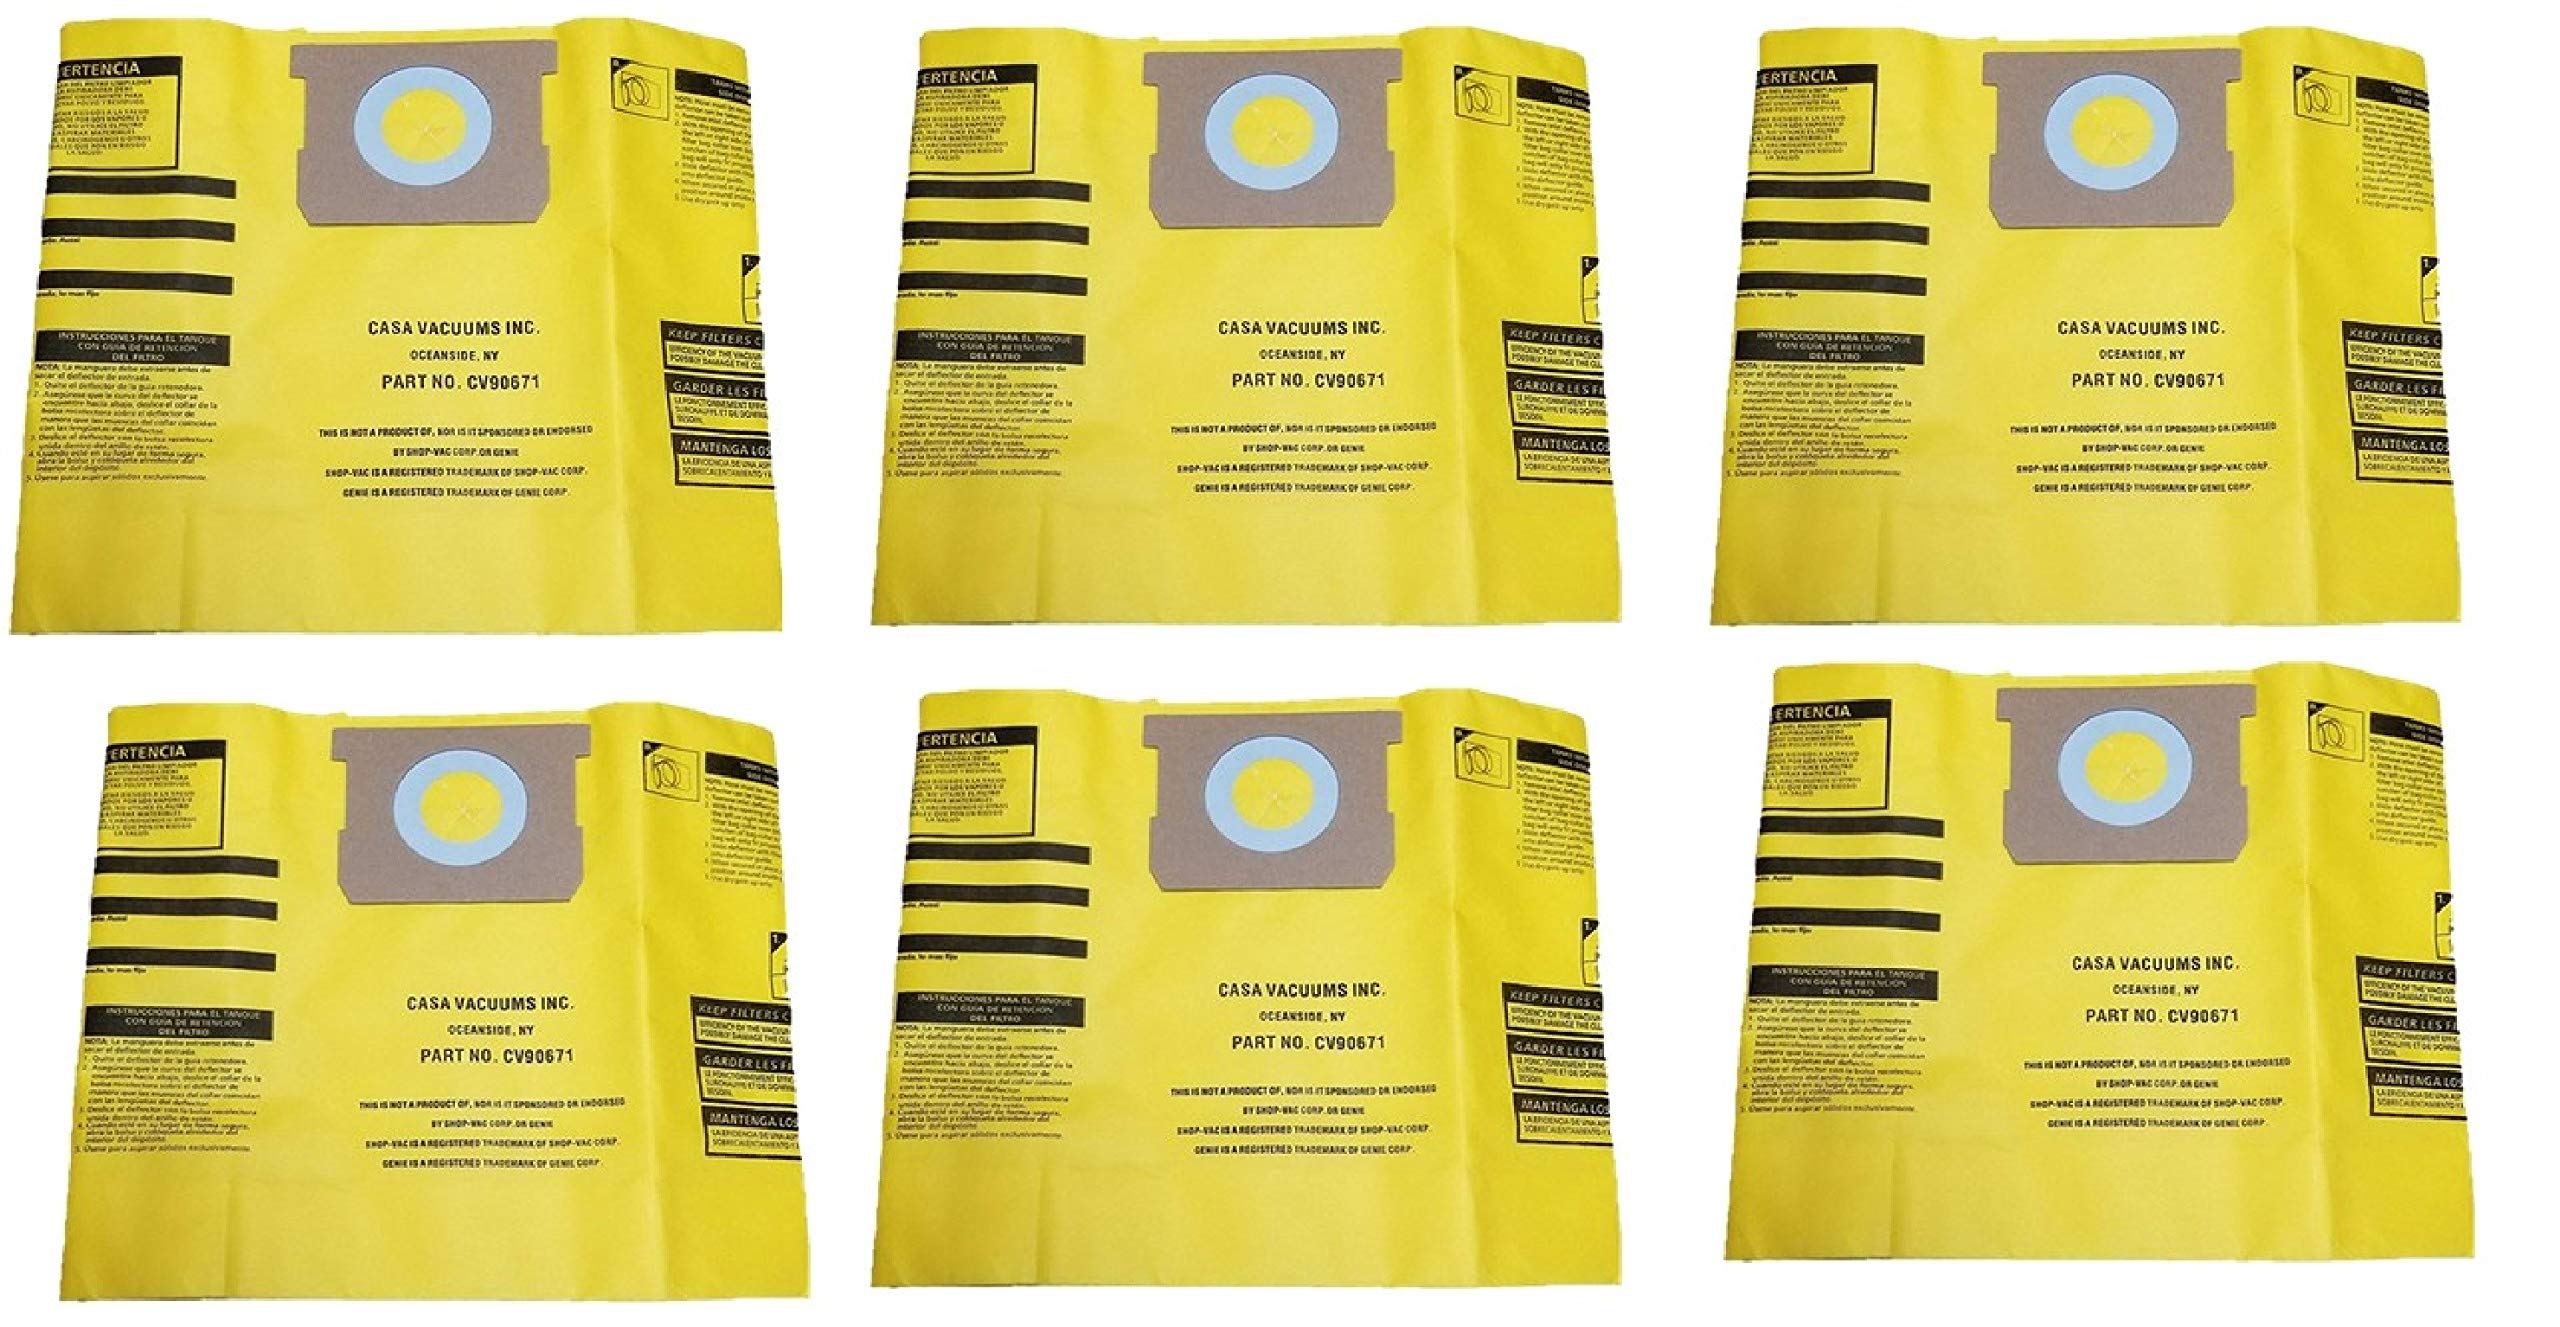 CASA VACUUMS replacement for Shop-Vac 5-8 Gallon HIGH EFFICIENCY Disposable Collection Bag CV9067100, replaces Genuine Part #'s Type H High Efficiency 9067100 & Type E 9066100, 6-Pack